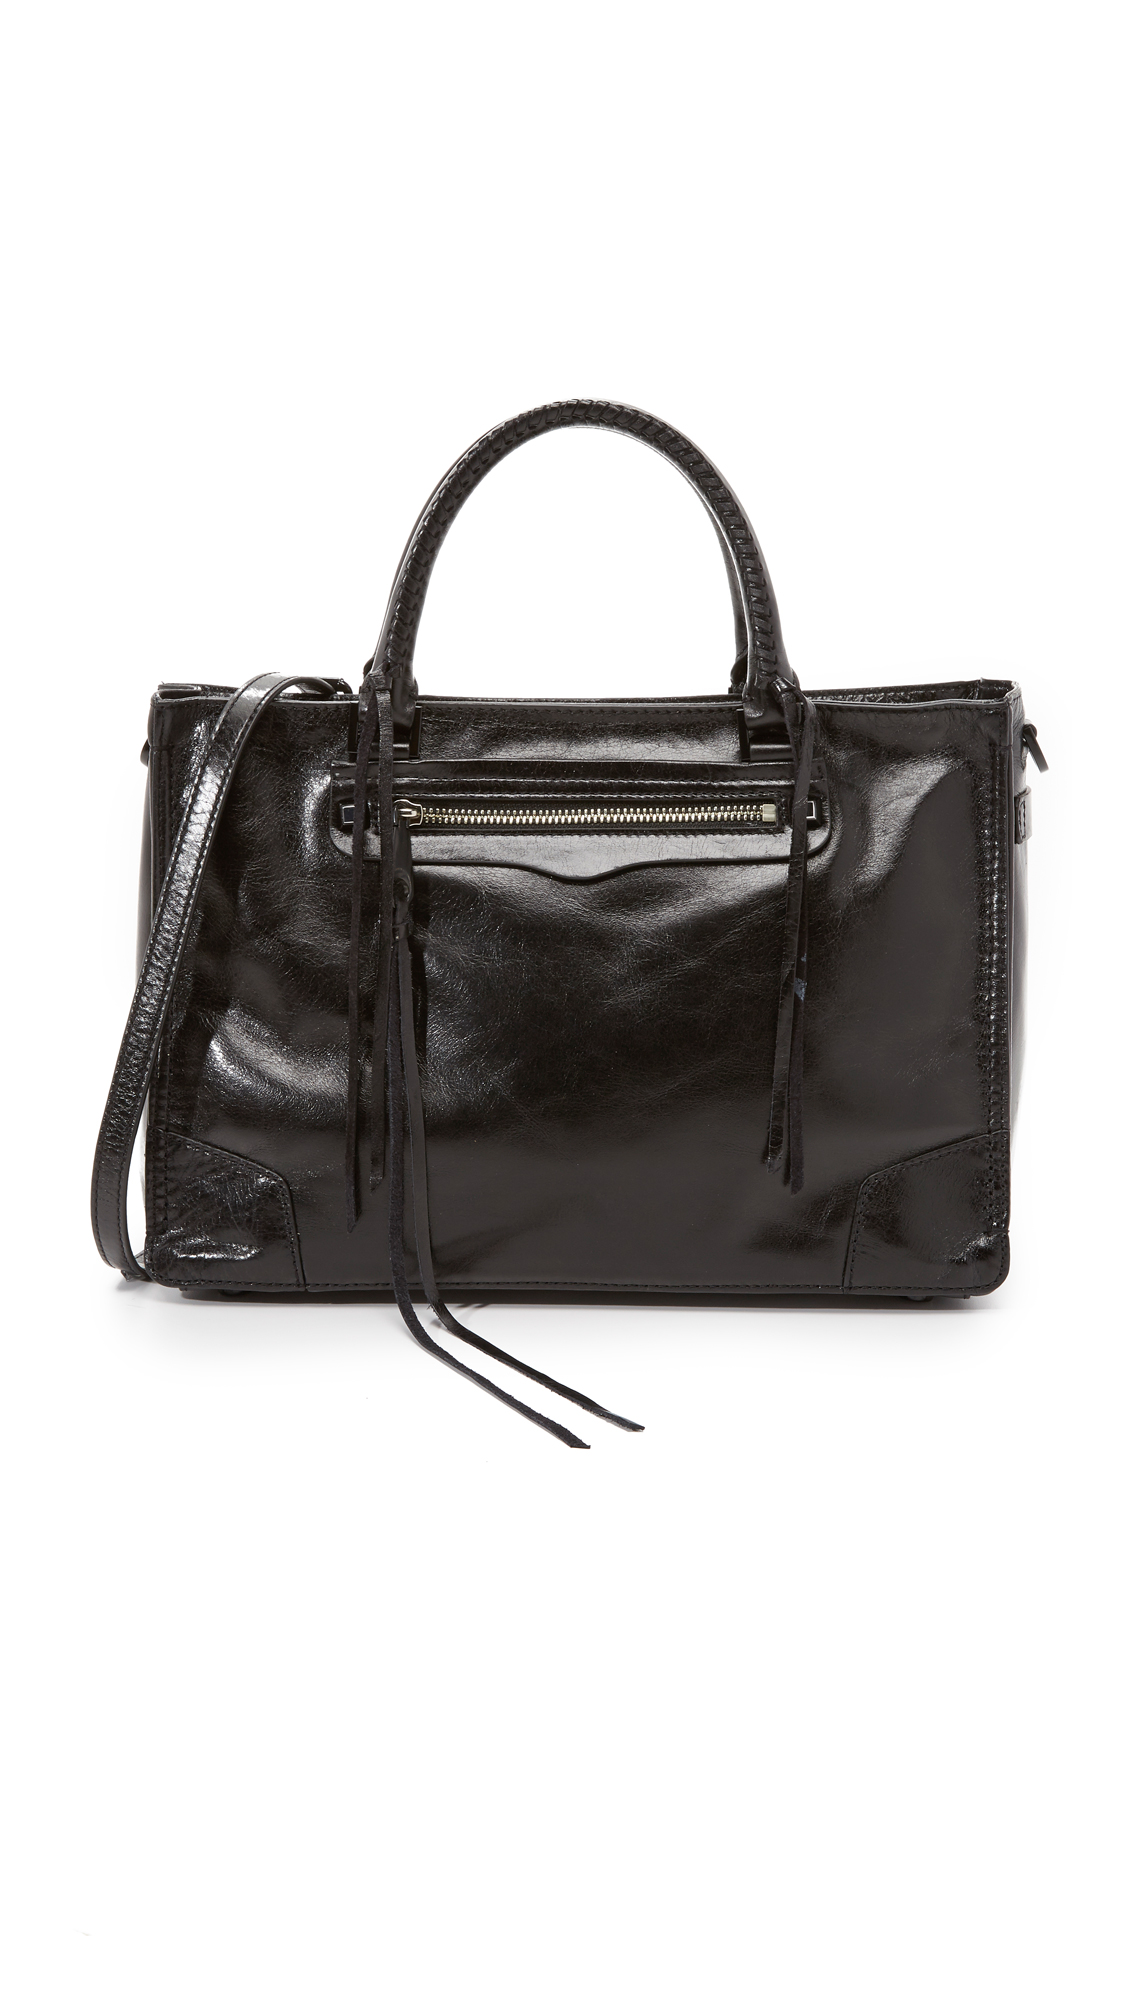 Rebecca Minkoff Regan Satchel - Black